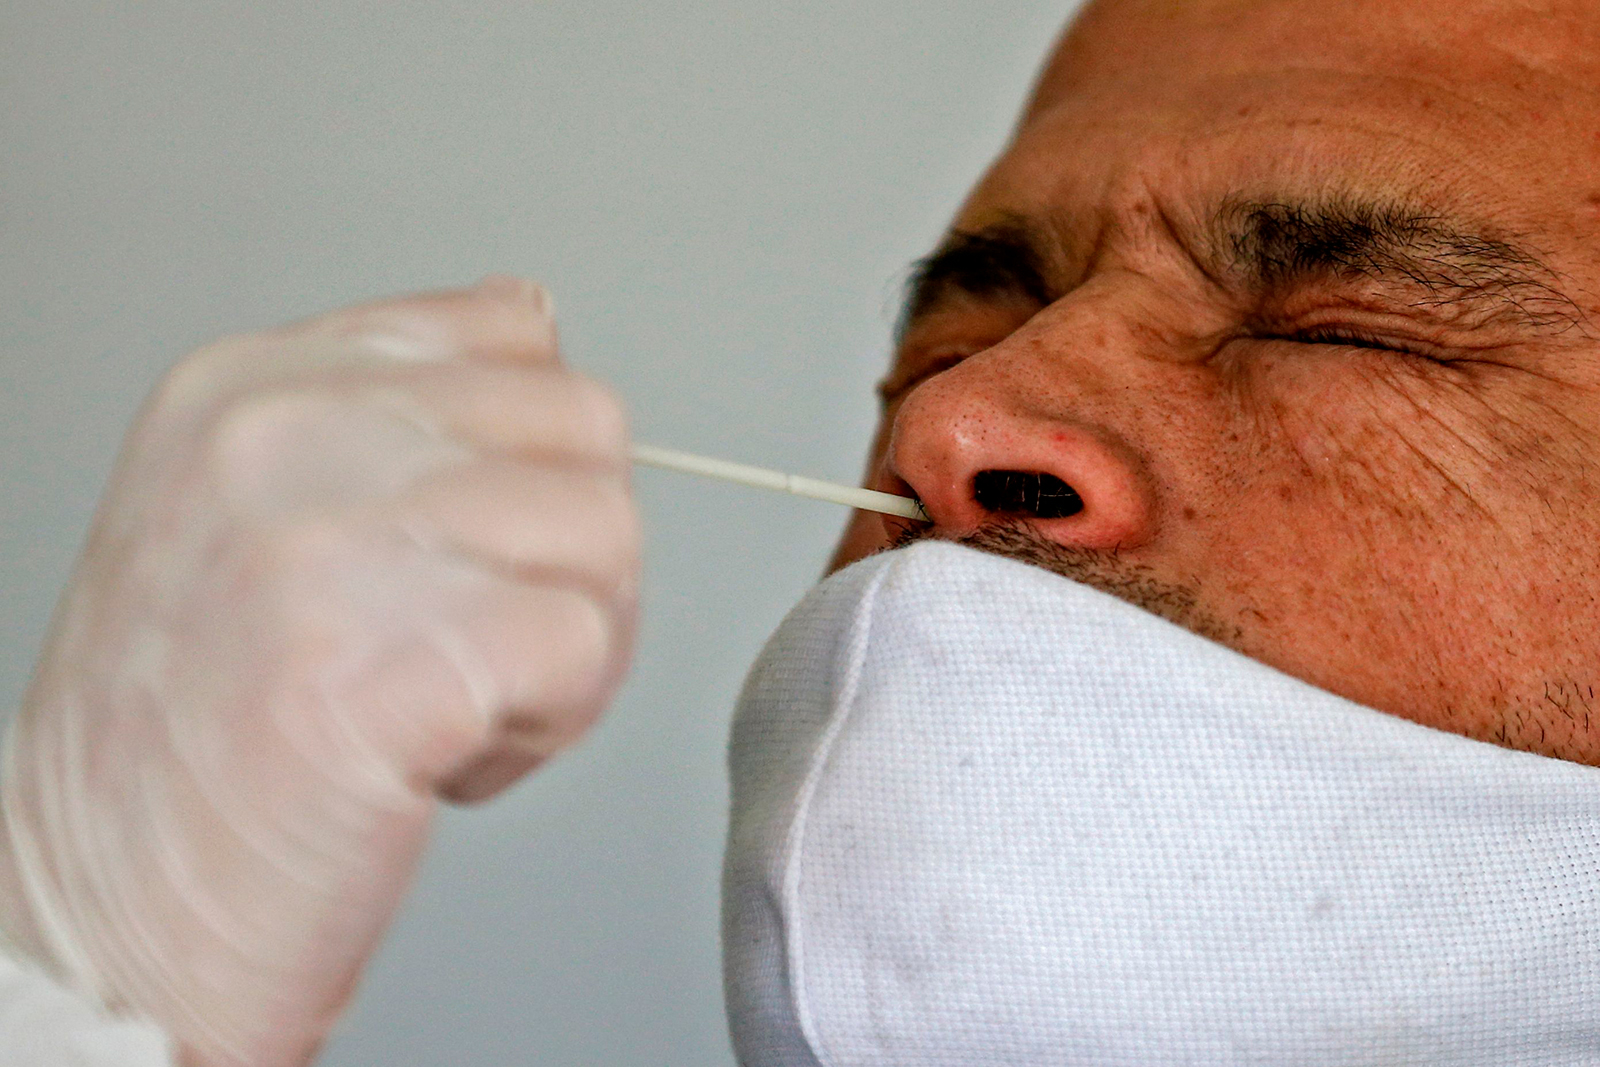 A health worker collects a nasal swab sample from a man to be tested for COVID-19 in Santiago, Chile, on Friday, July 10.